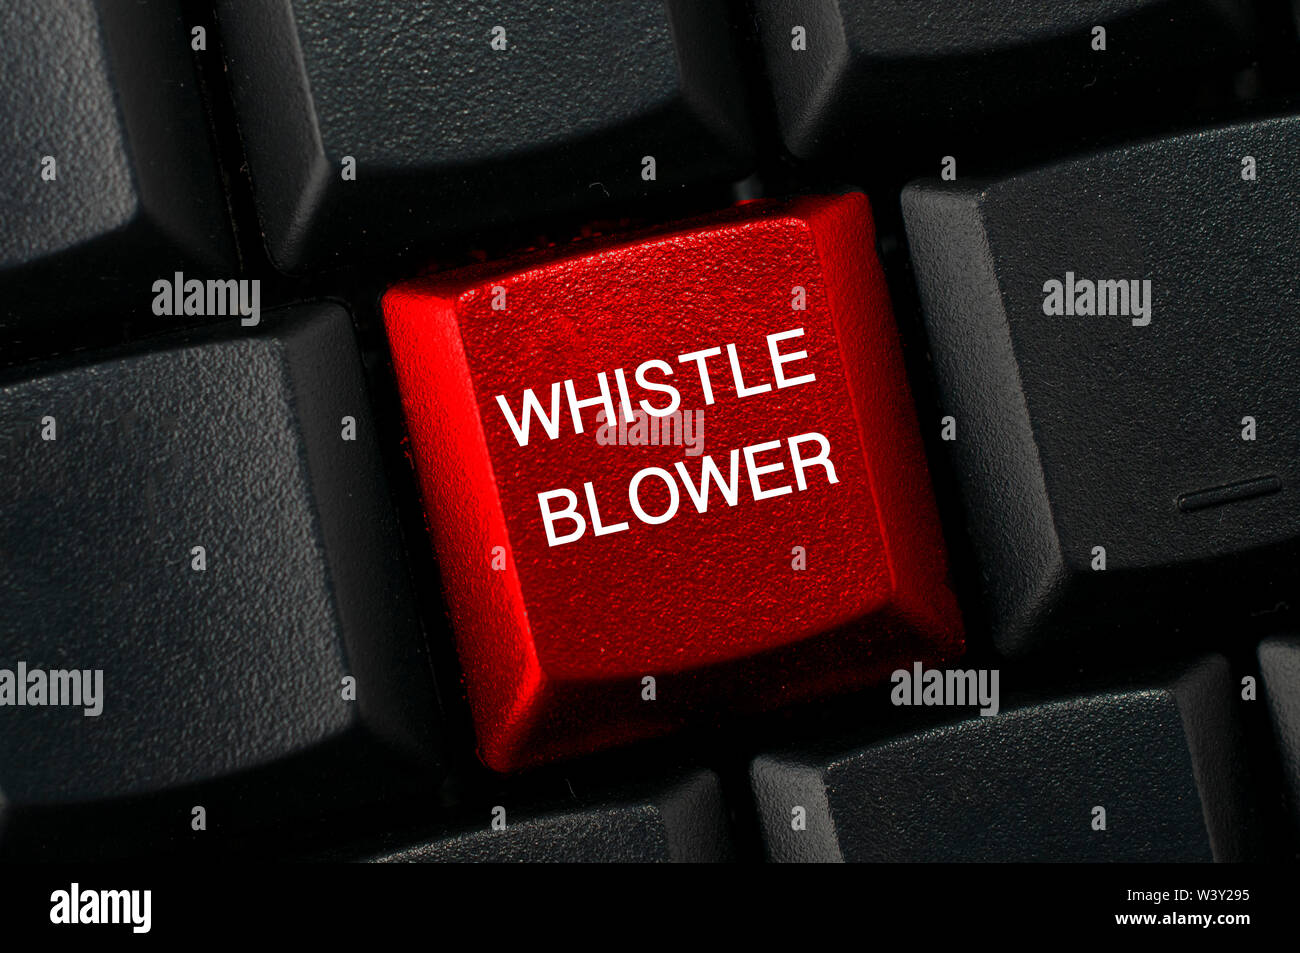 Whistleblowing concept: Black keyboard with a red key and the whistleblower word - Stock Image